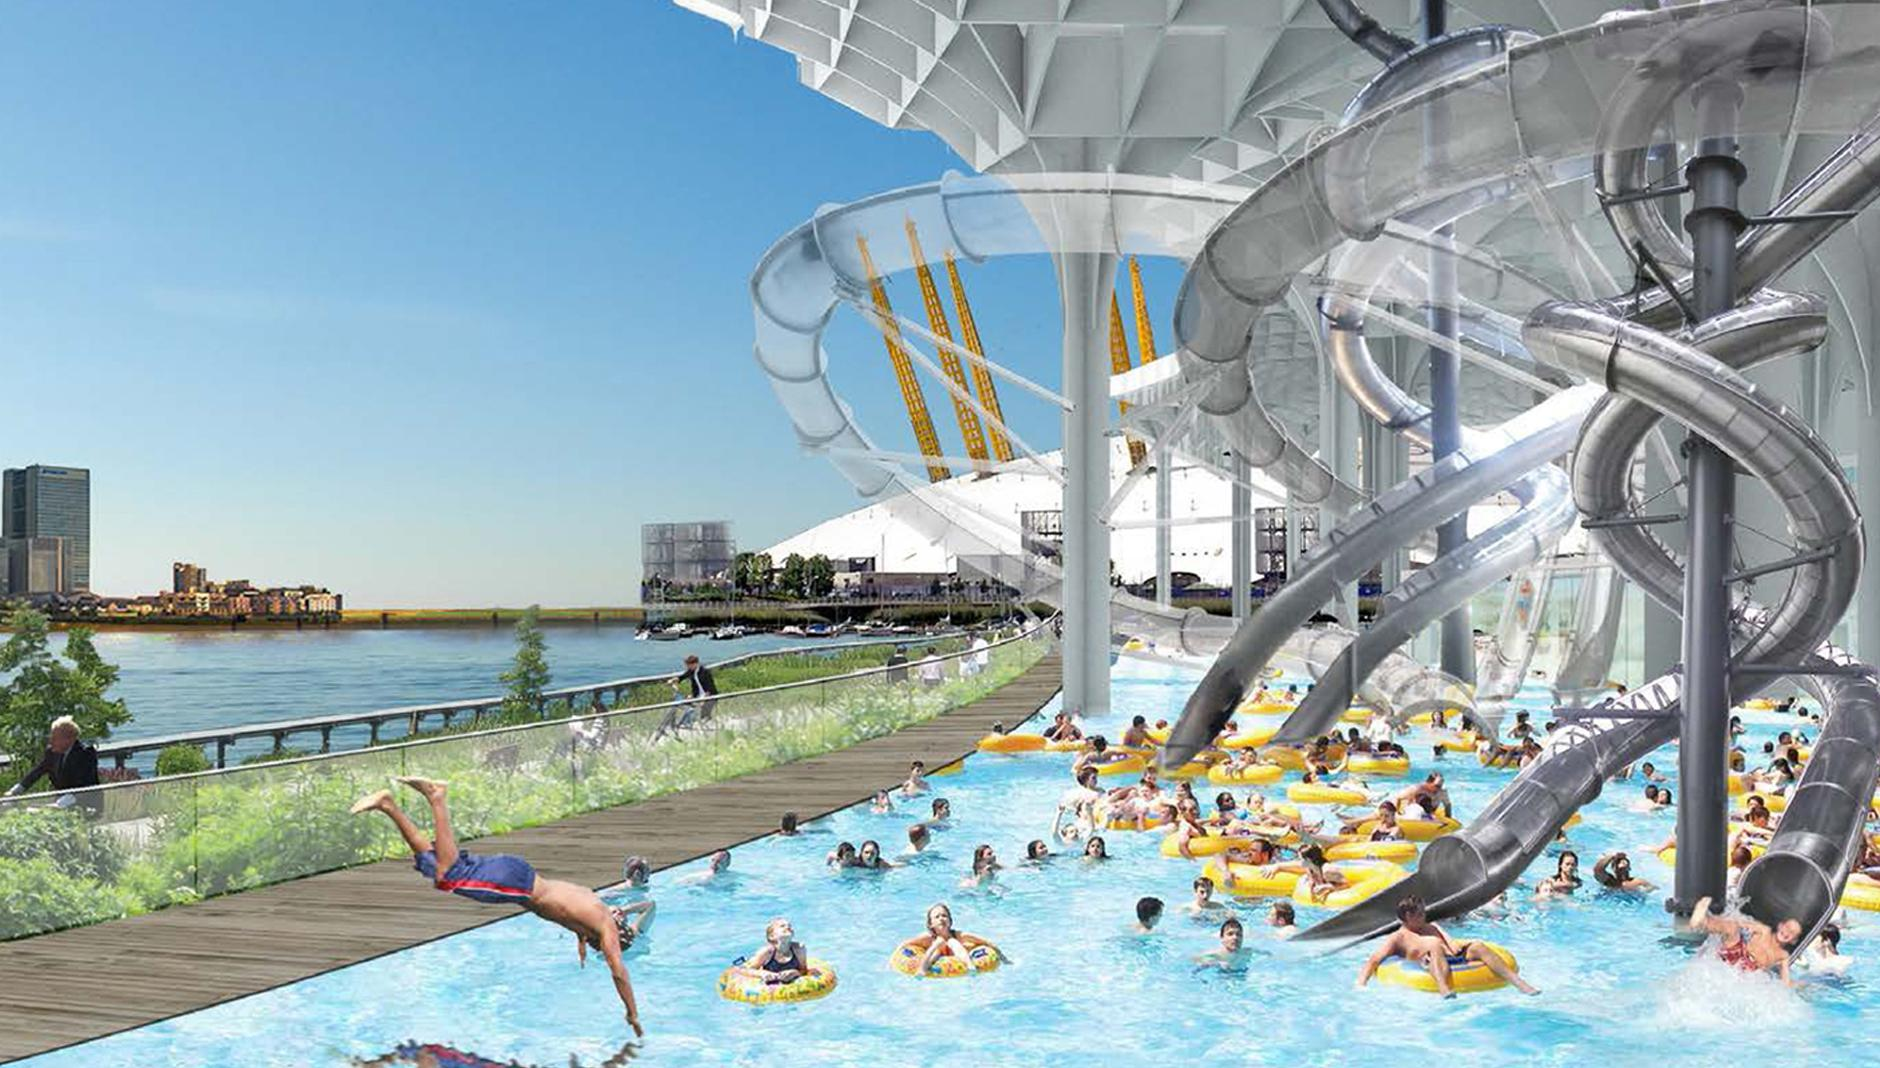 Public spaces along the thames waterpark london - London swimming pools with slides ...